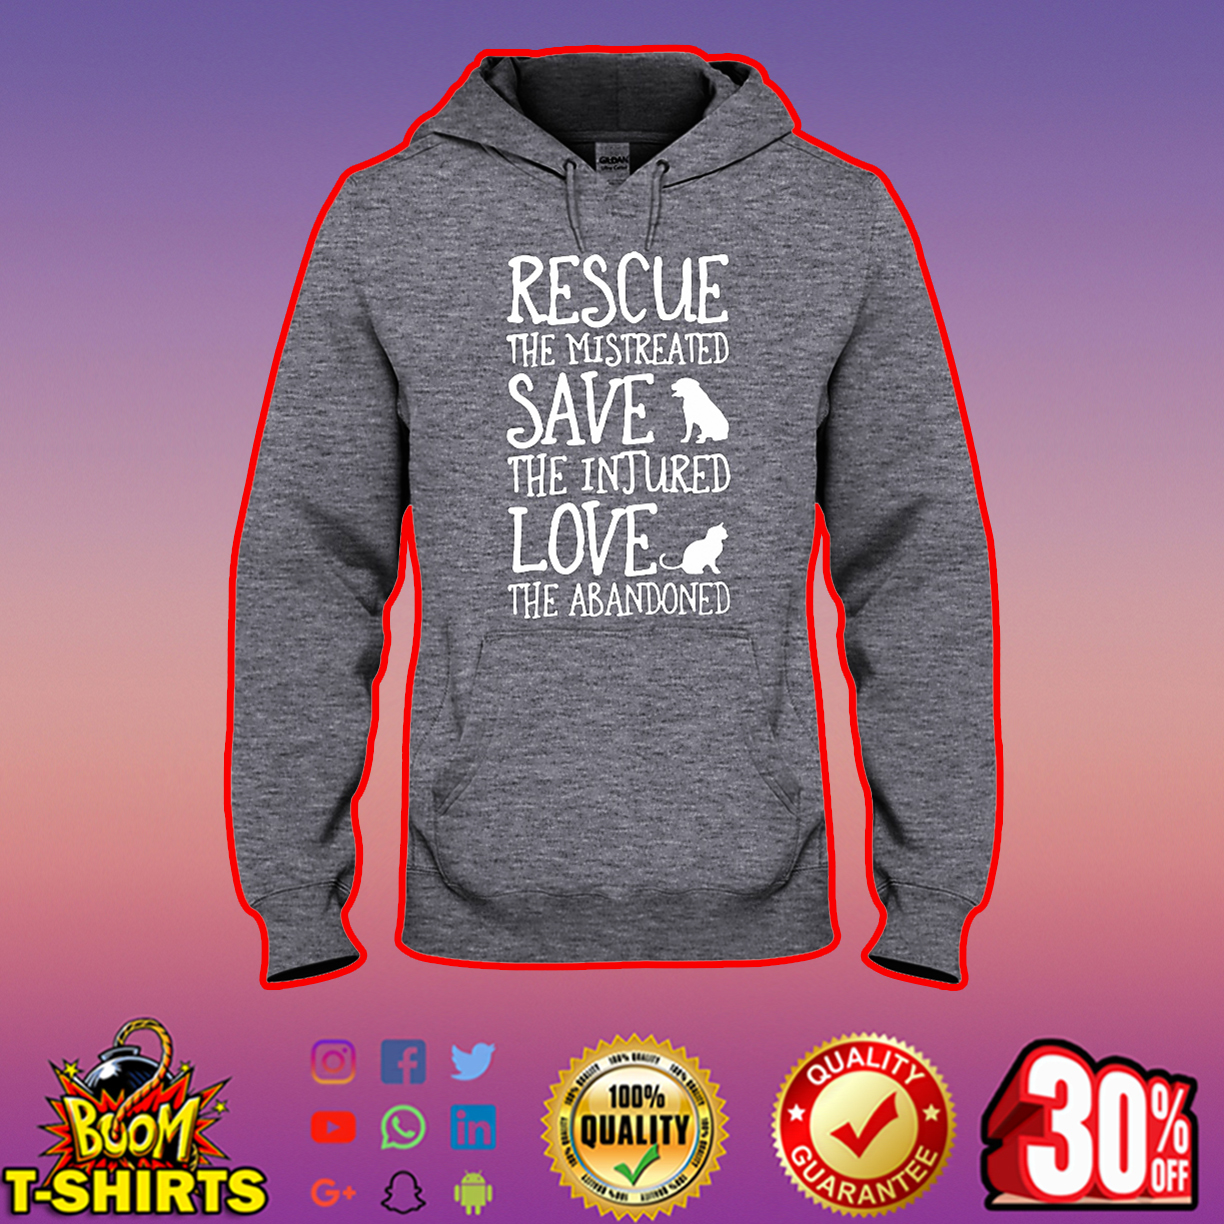 Rescue the mistreated save the injured love the abandoned hooded sweatshirt